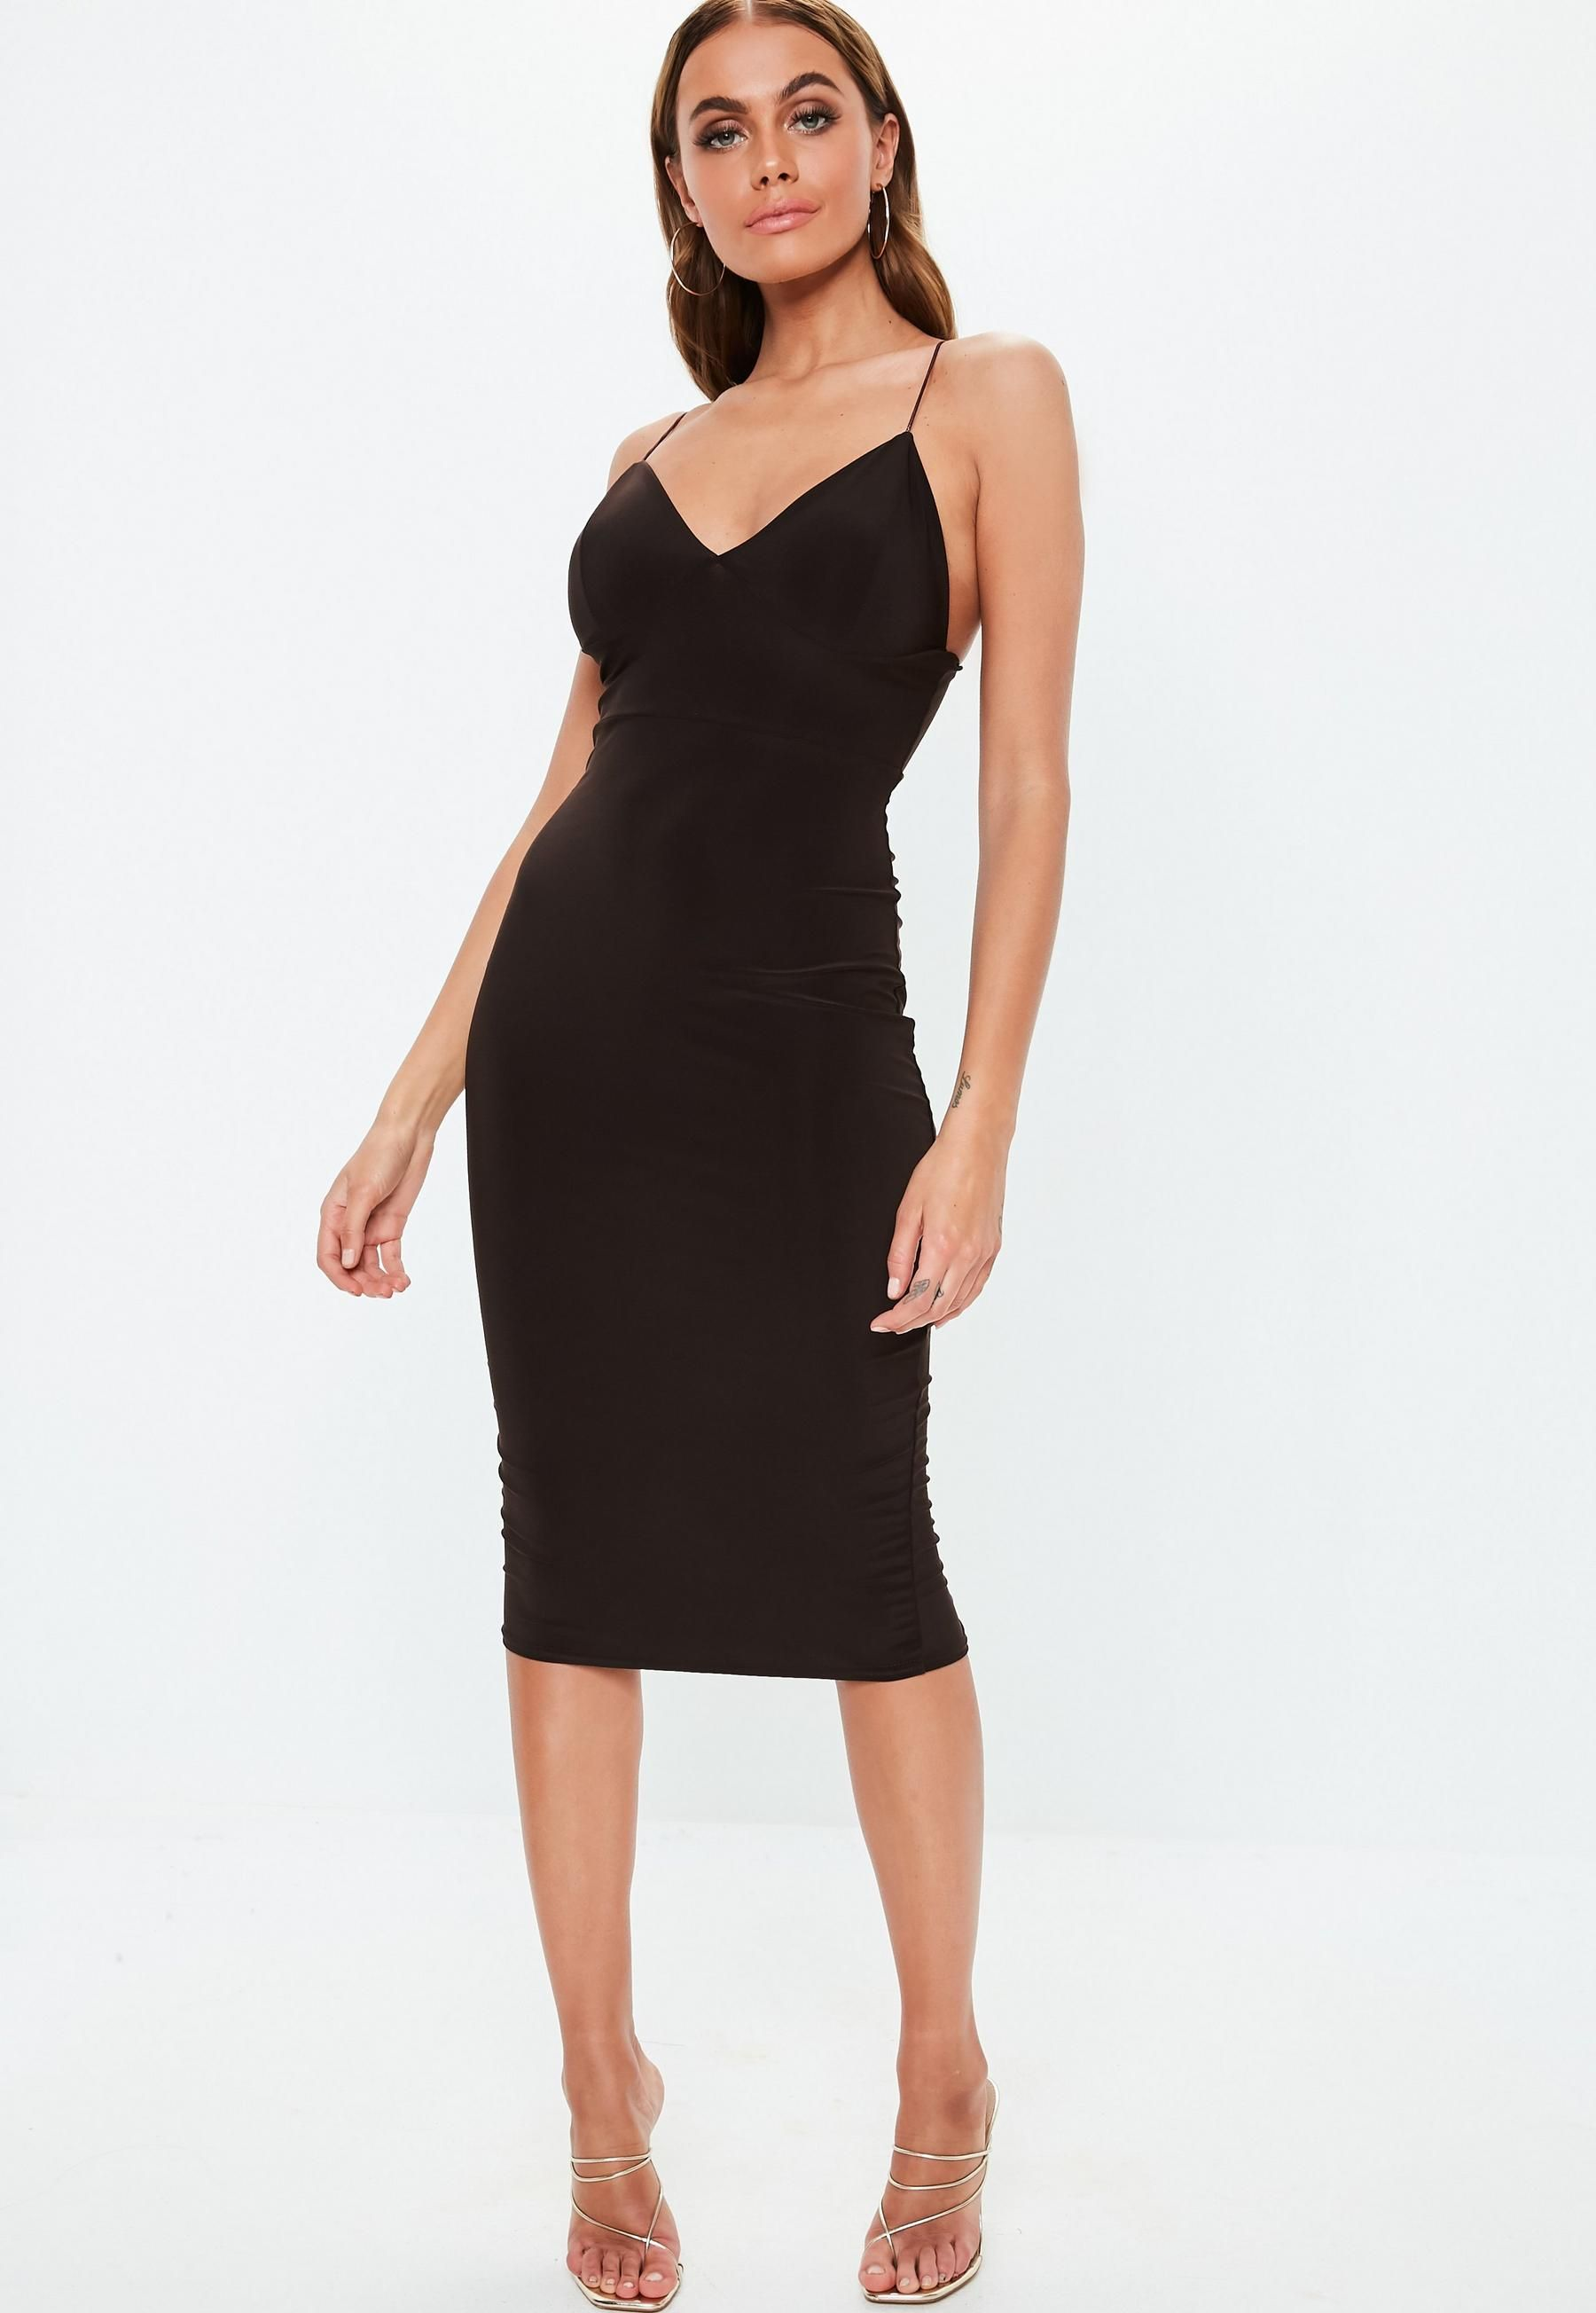 38c36e97efb4 Missguided Brown Slinky Strappy Midi Dress | night life: list of ...